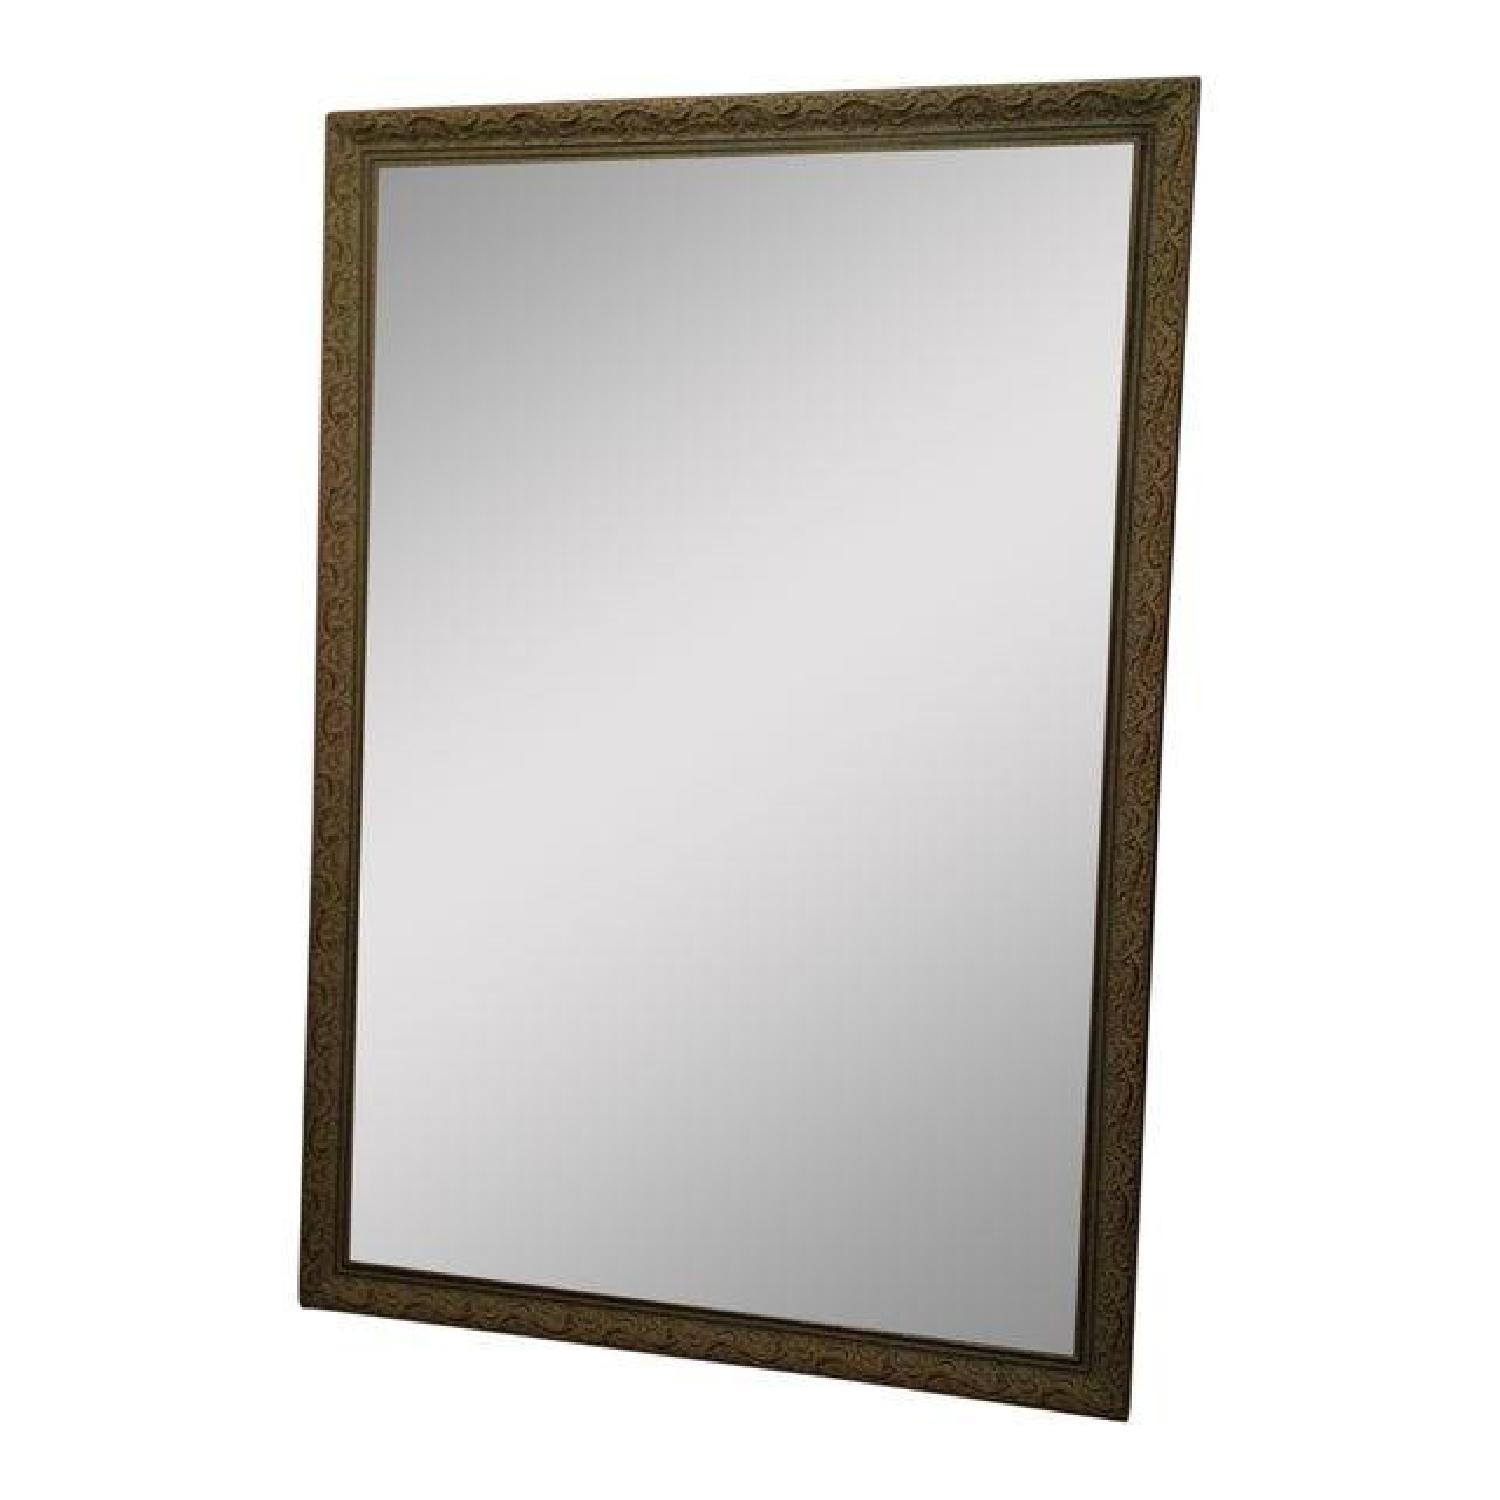 Ornate Frame Mirror - image-0